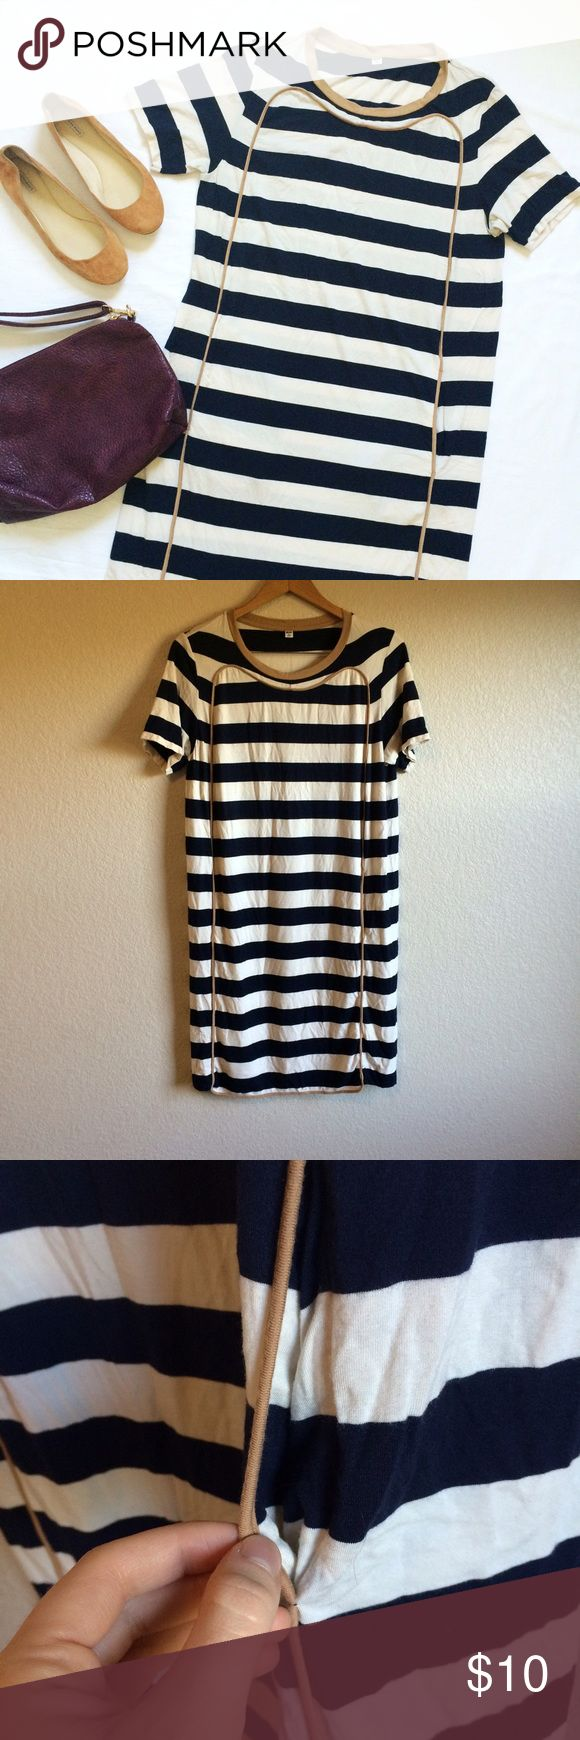 Uniqlo • Dress This striped Tshirt dress has pockets in the front. Two small pen marks shown. Uniqlo Dresses